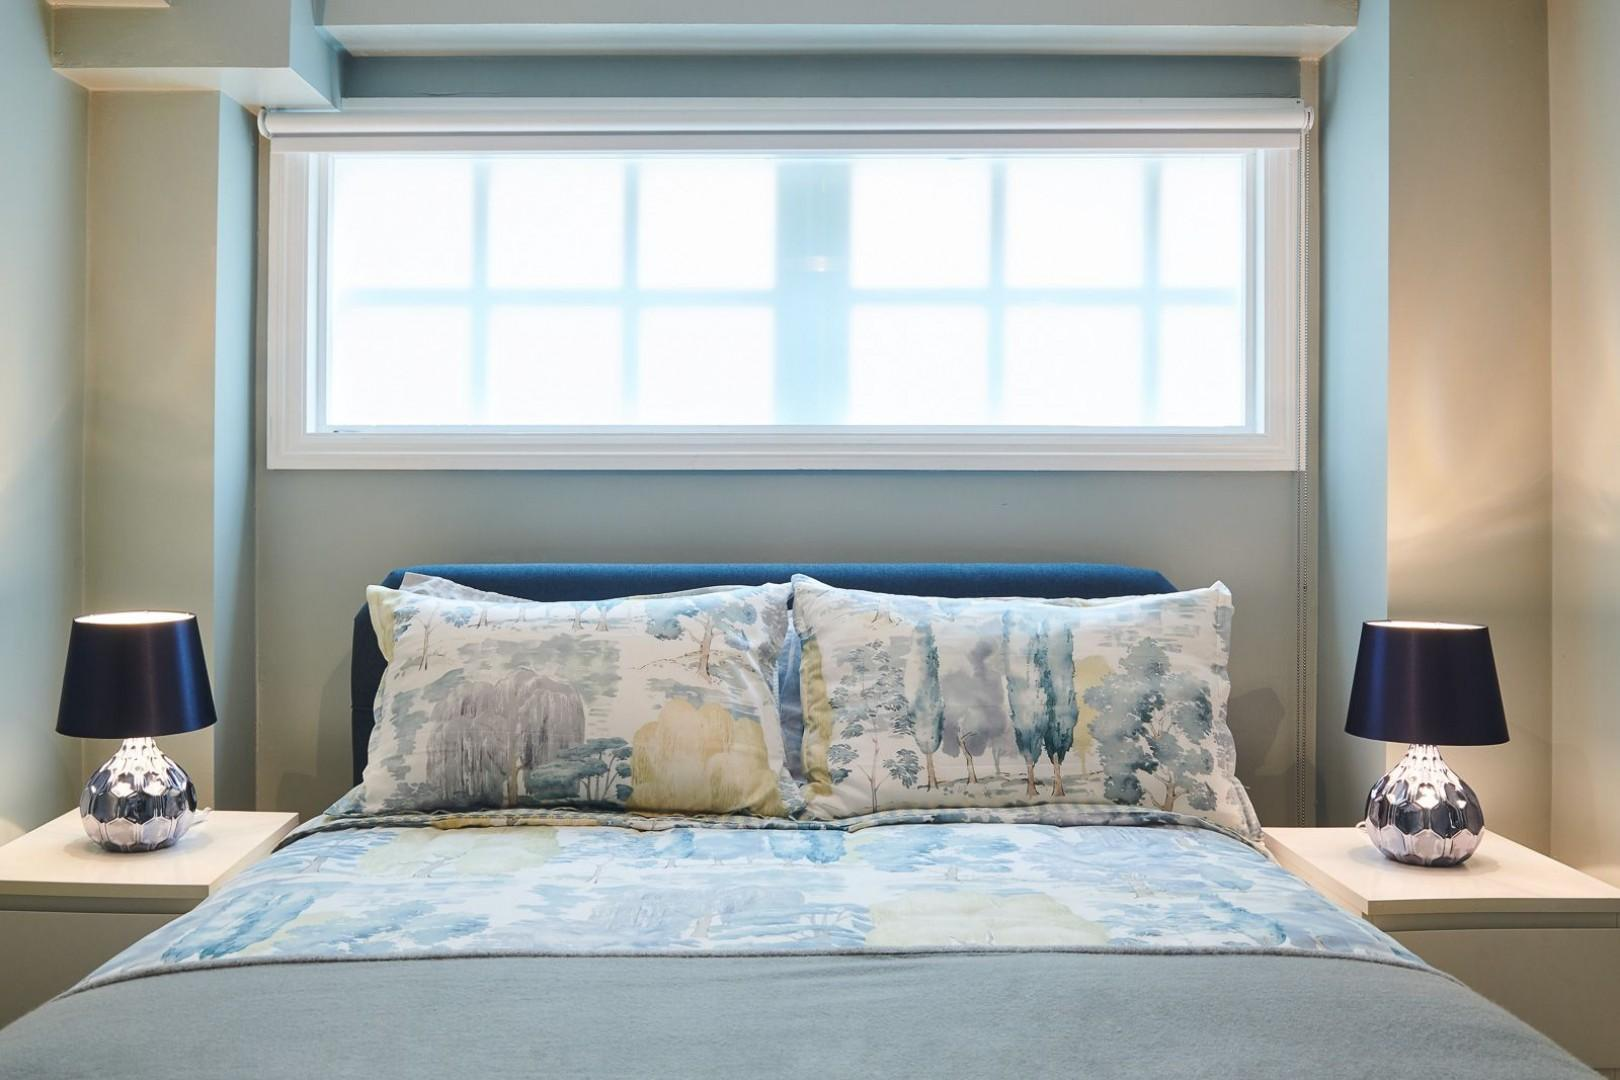 Luxurious linens and soft lighting